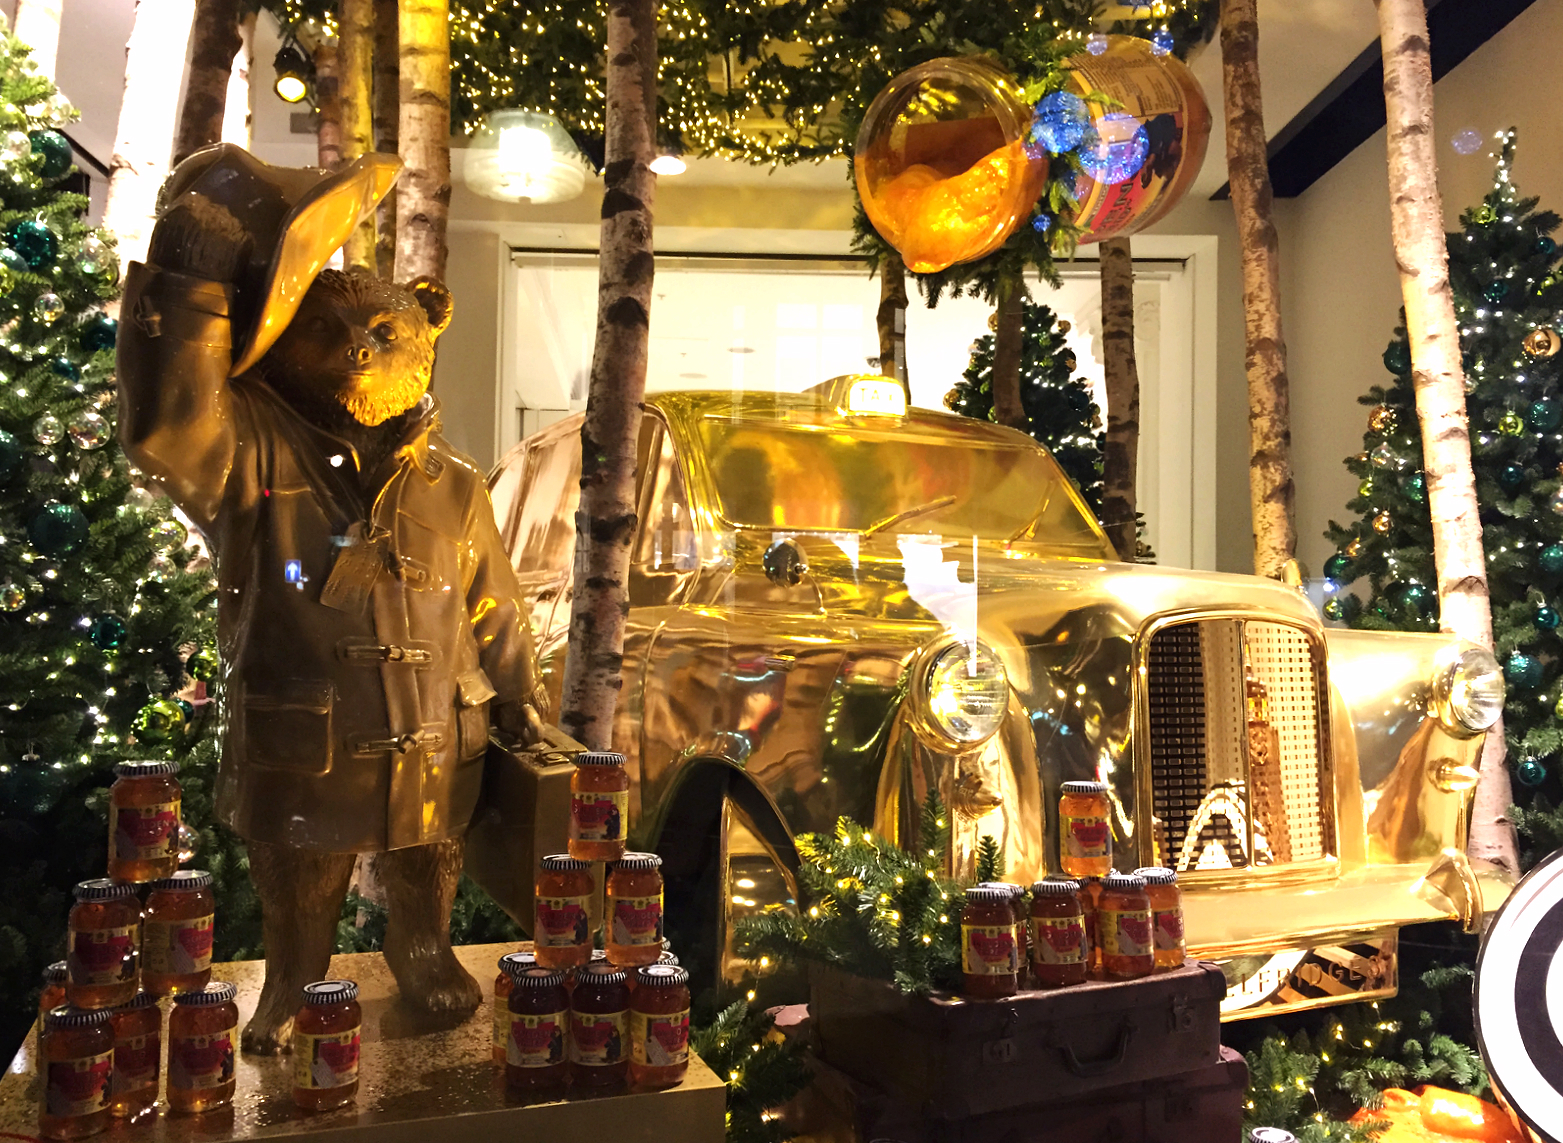 Golden Paddington Bear travels in style -- with his honey pot and taxi.  © Eileen Hsieh